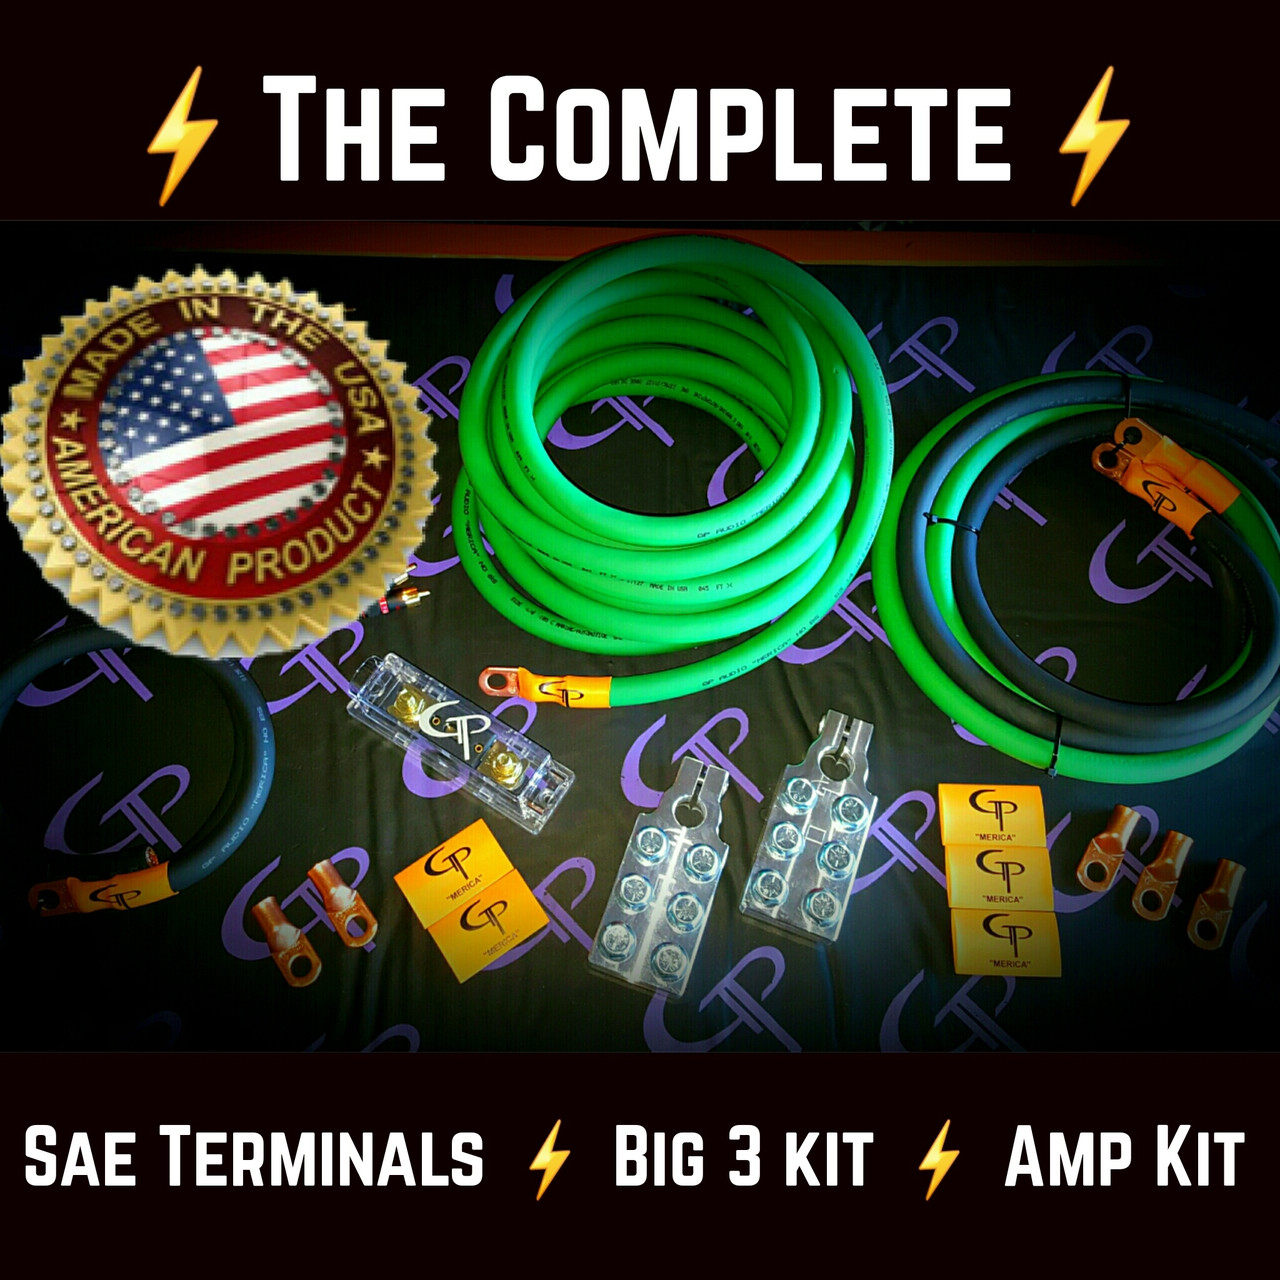 the complete 1 0 awg stage 1 wiring kit gp car audio boss 16 pin wiring [ 1280 x 1280 Pixel ]